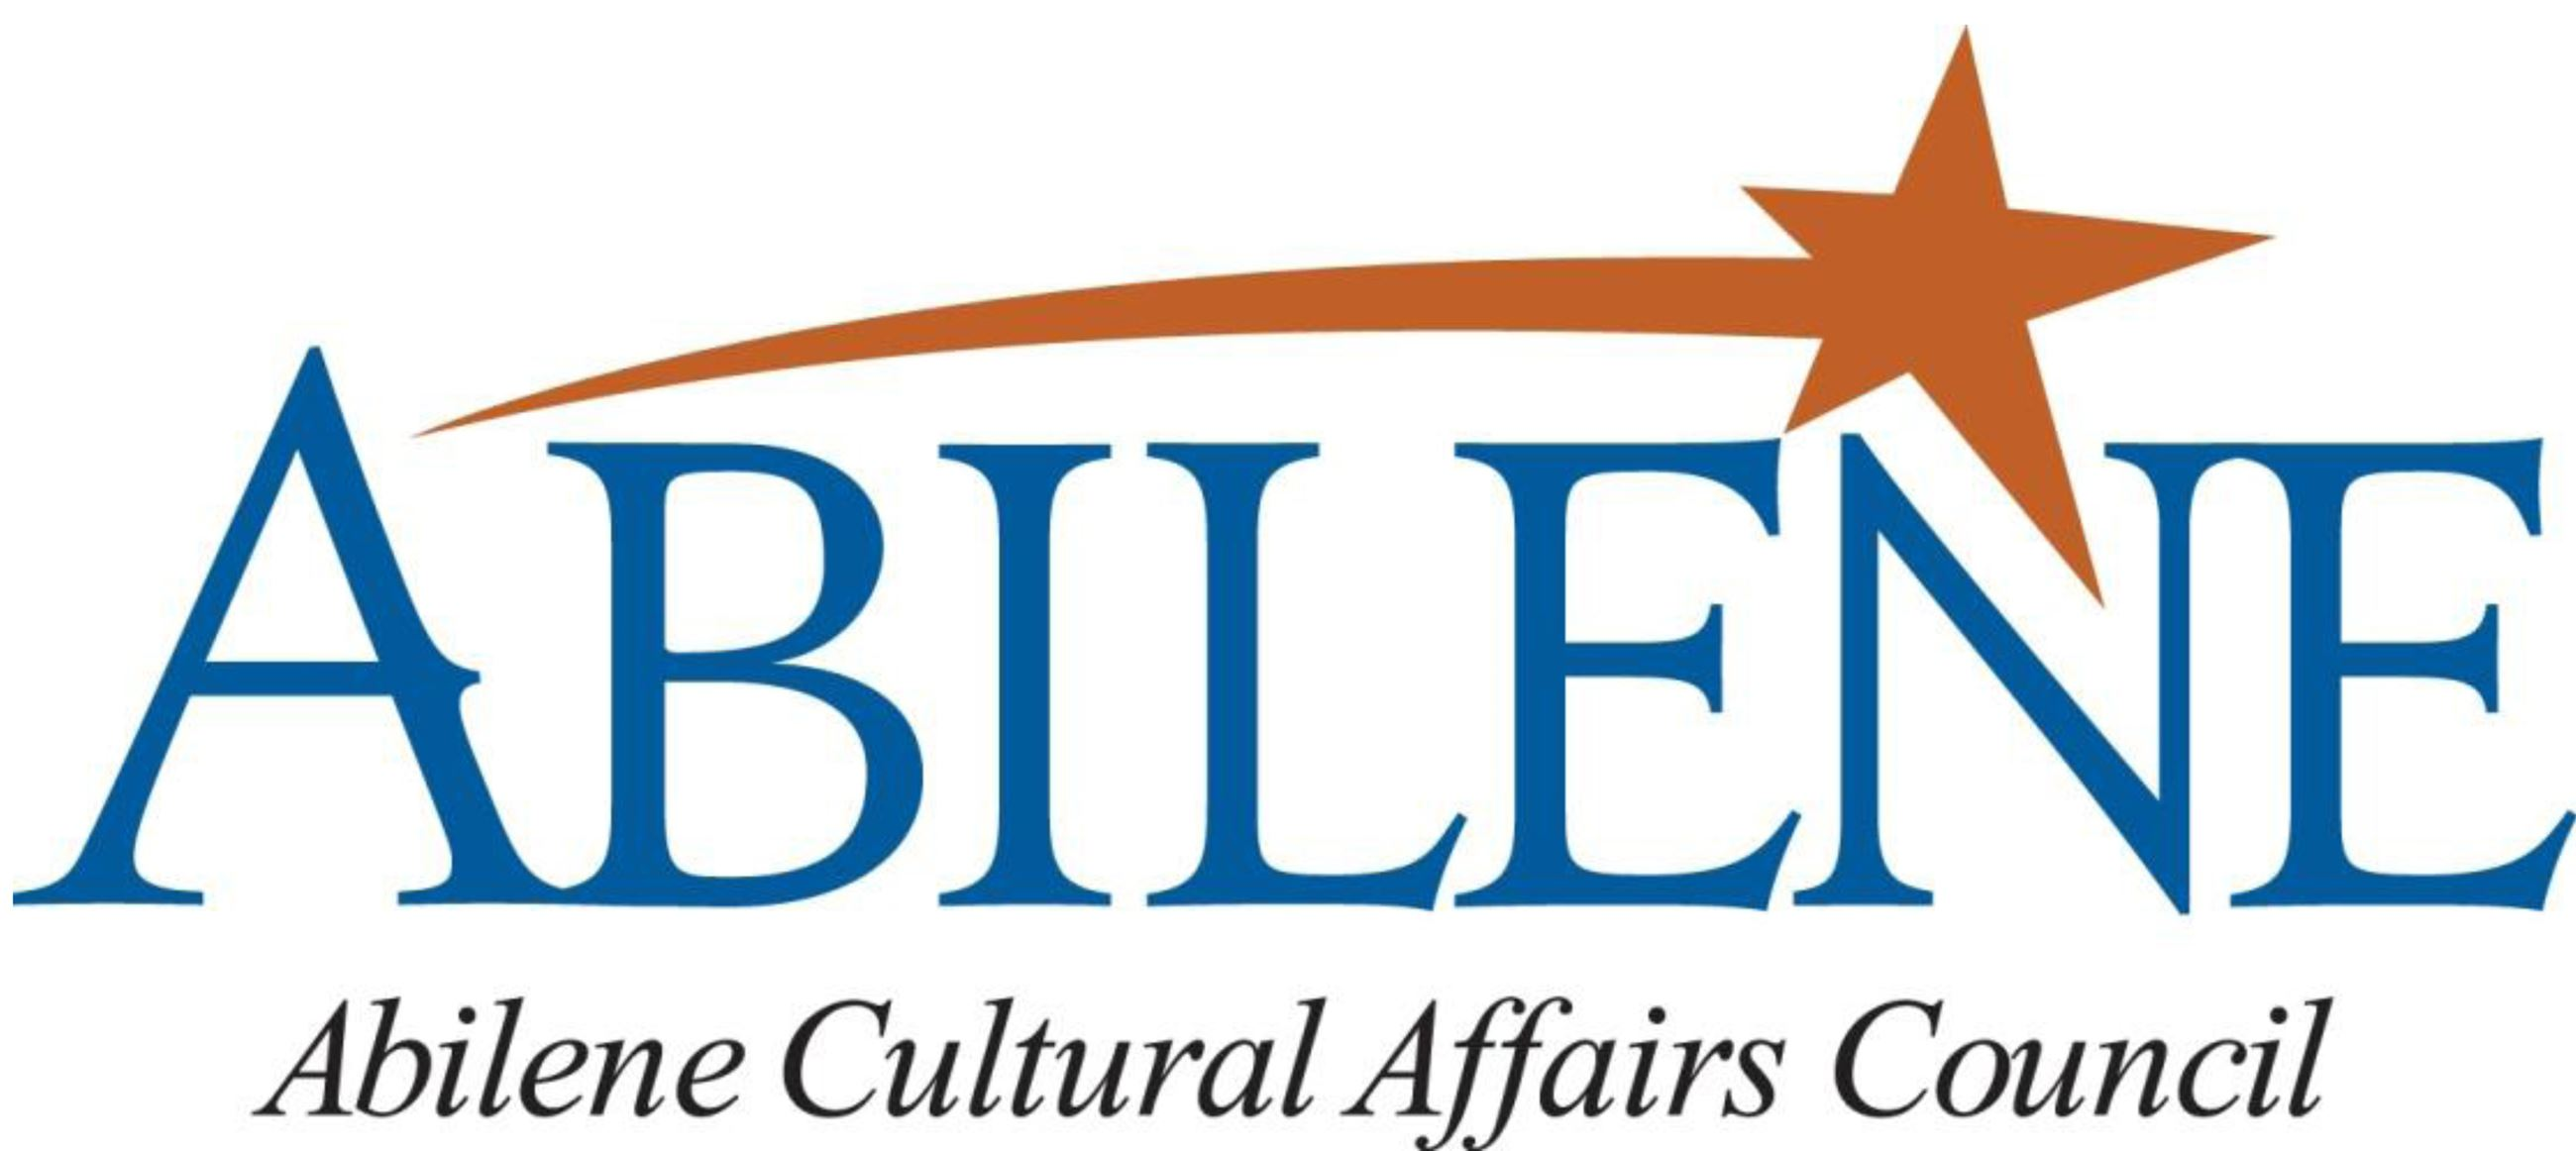 Graphic design image of logo for Abilene Cultural Affairs Council